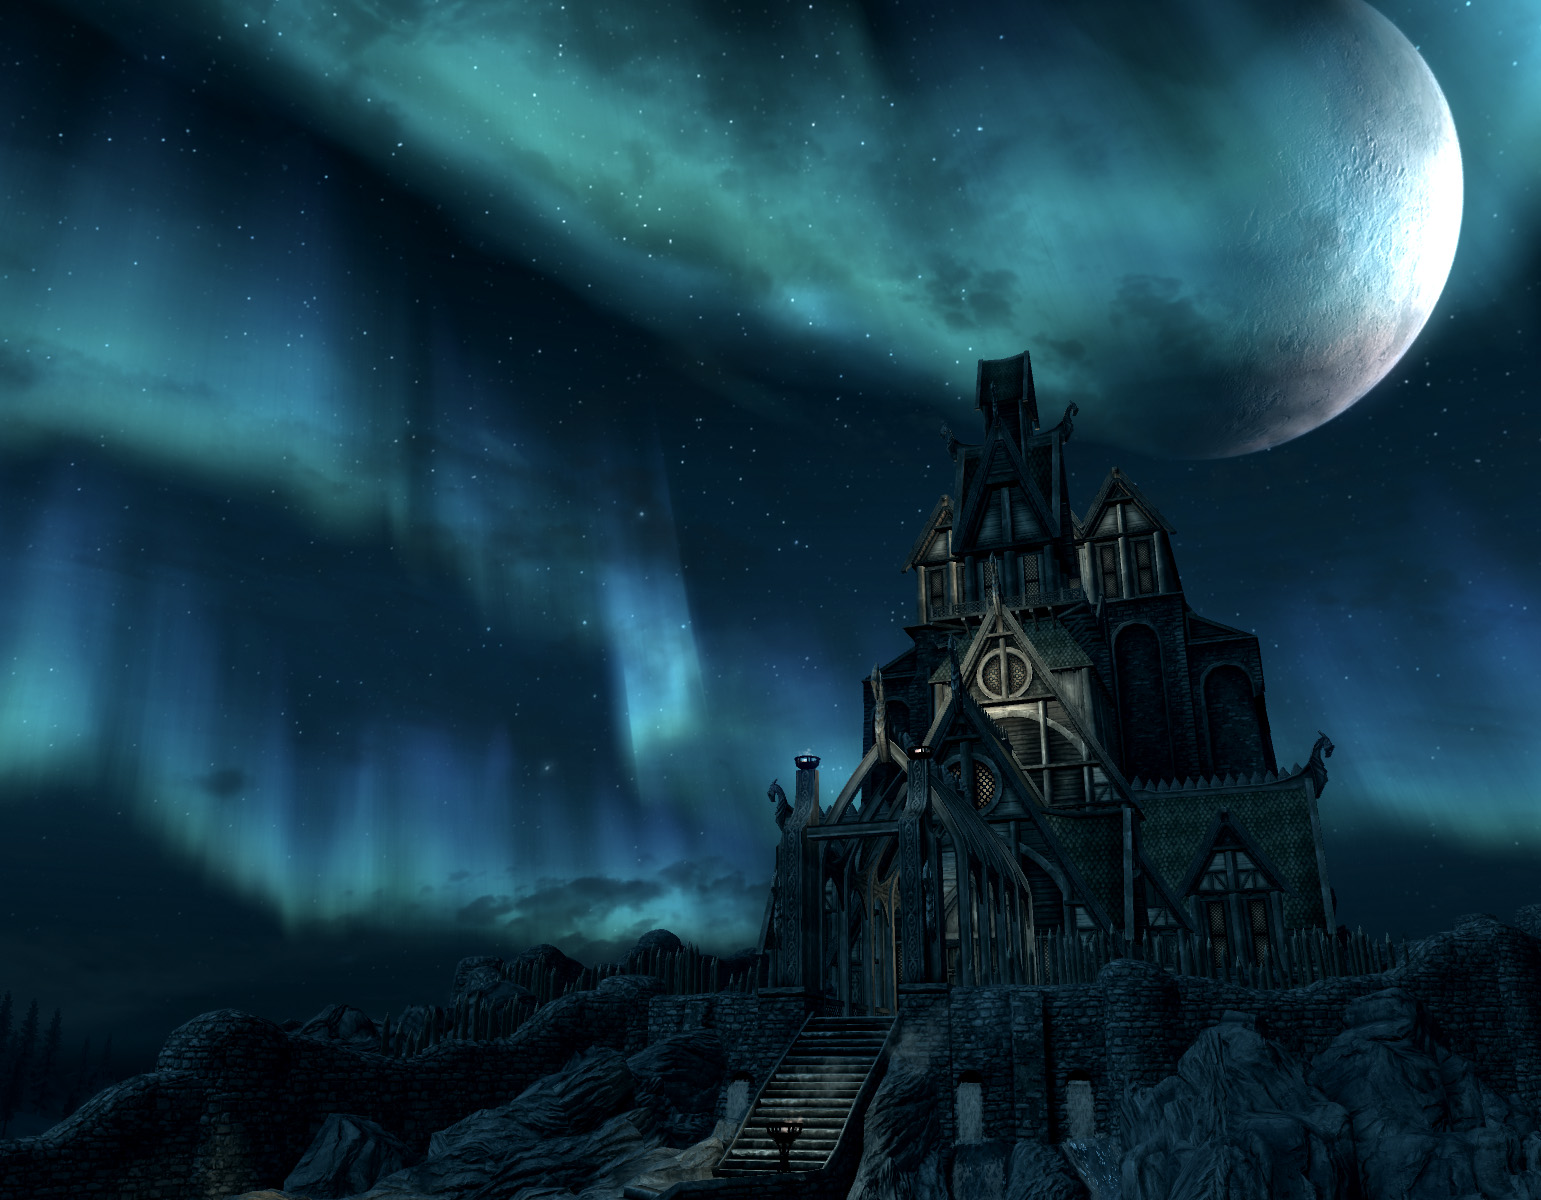 aurora over dragonsreach wallpaper and background image | 1541x1200